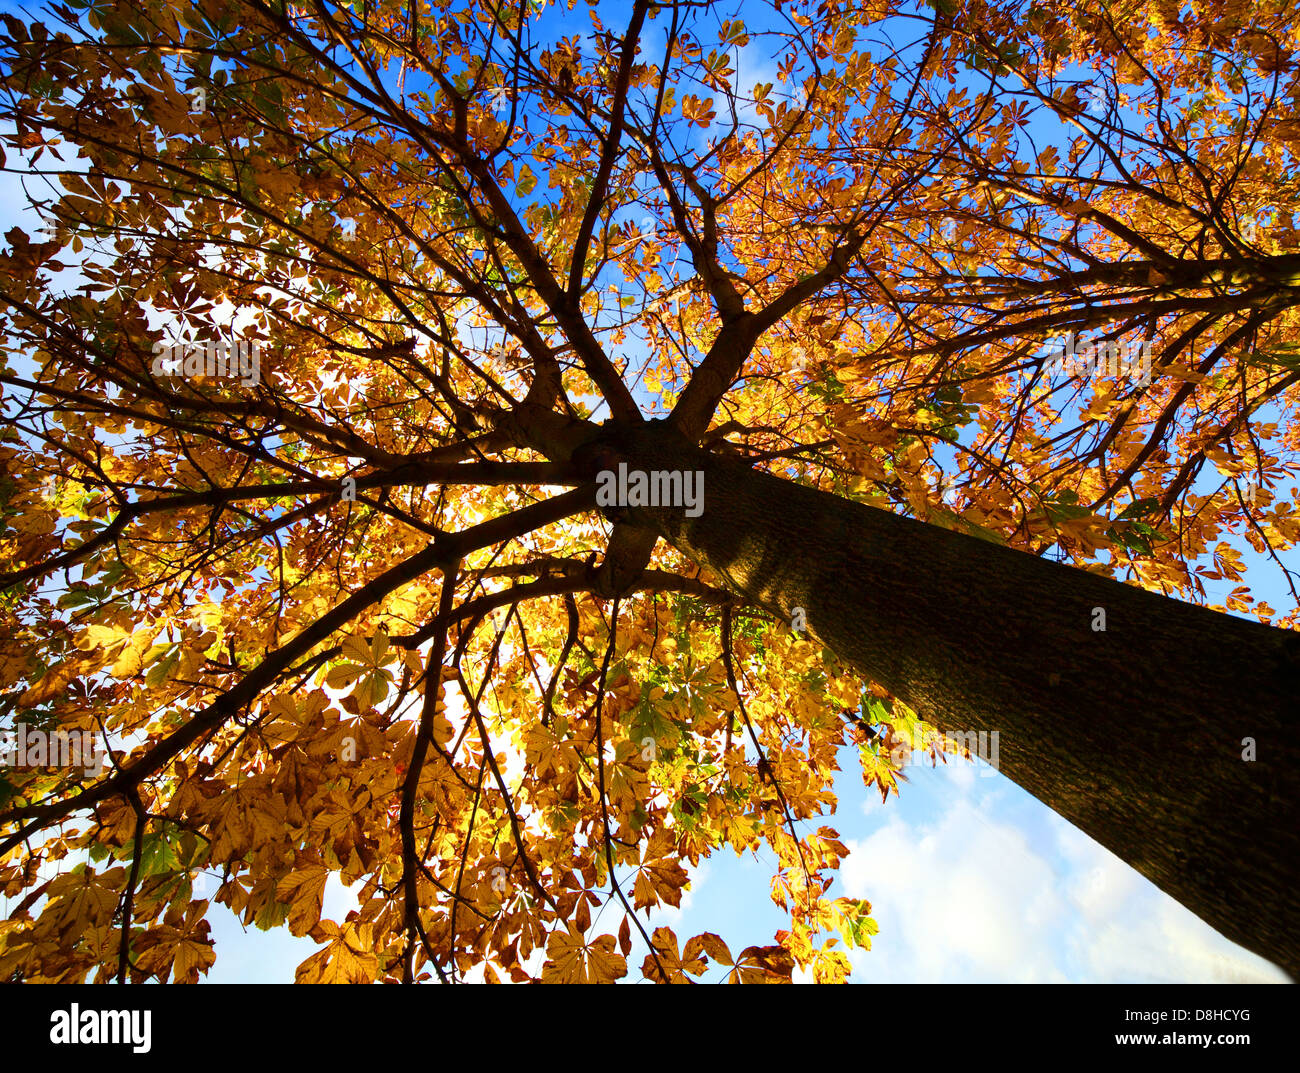 Looking up at a tree in autumn golden leaves - Stock Image